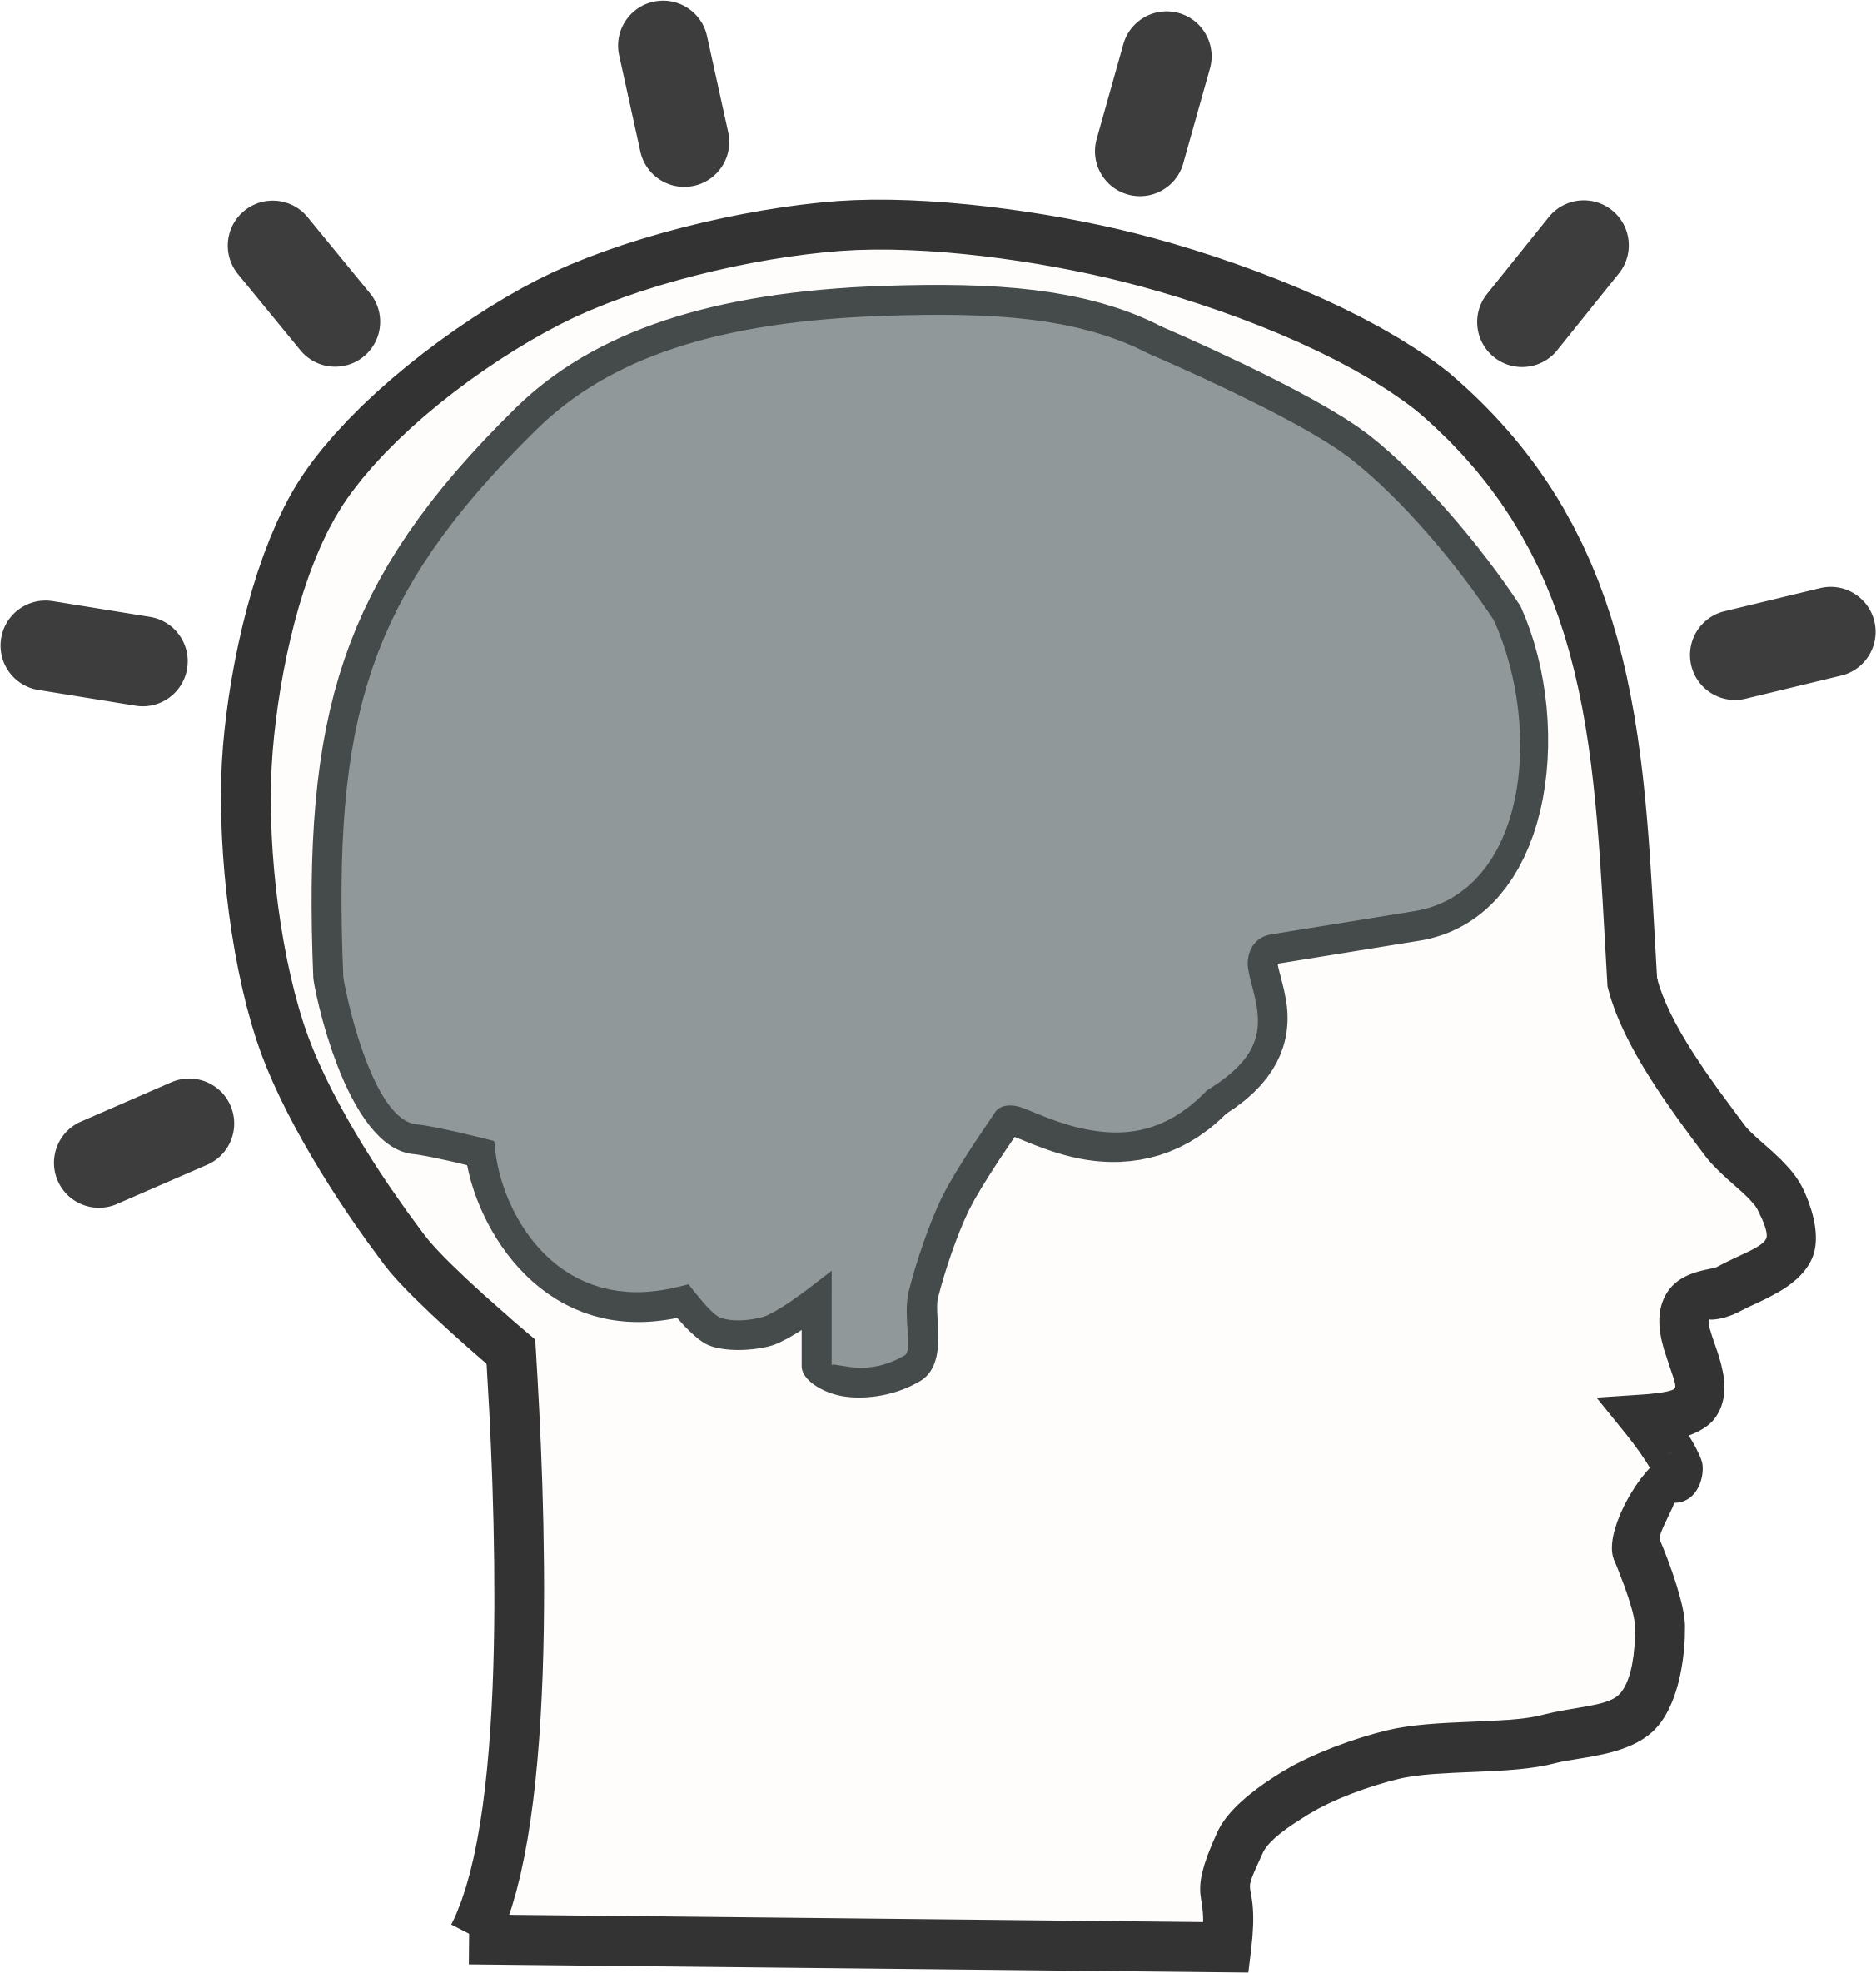 Brain psychology. Best clipart clipartion com